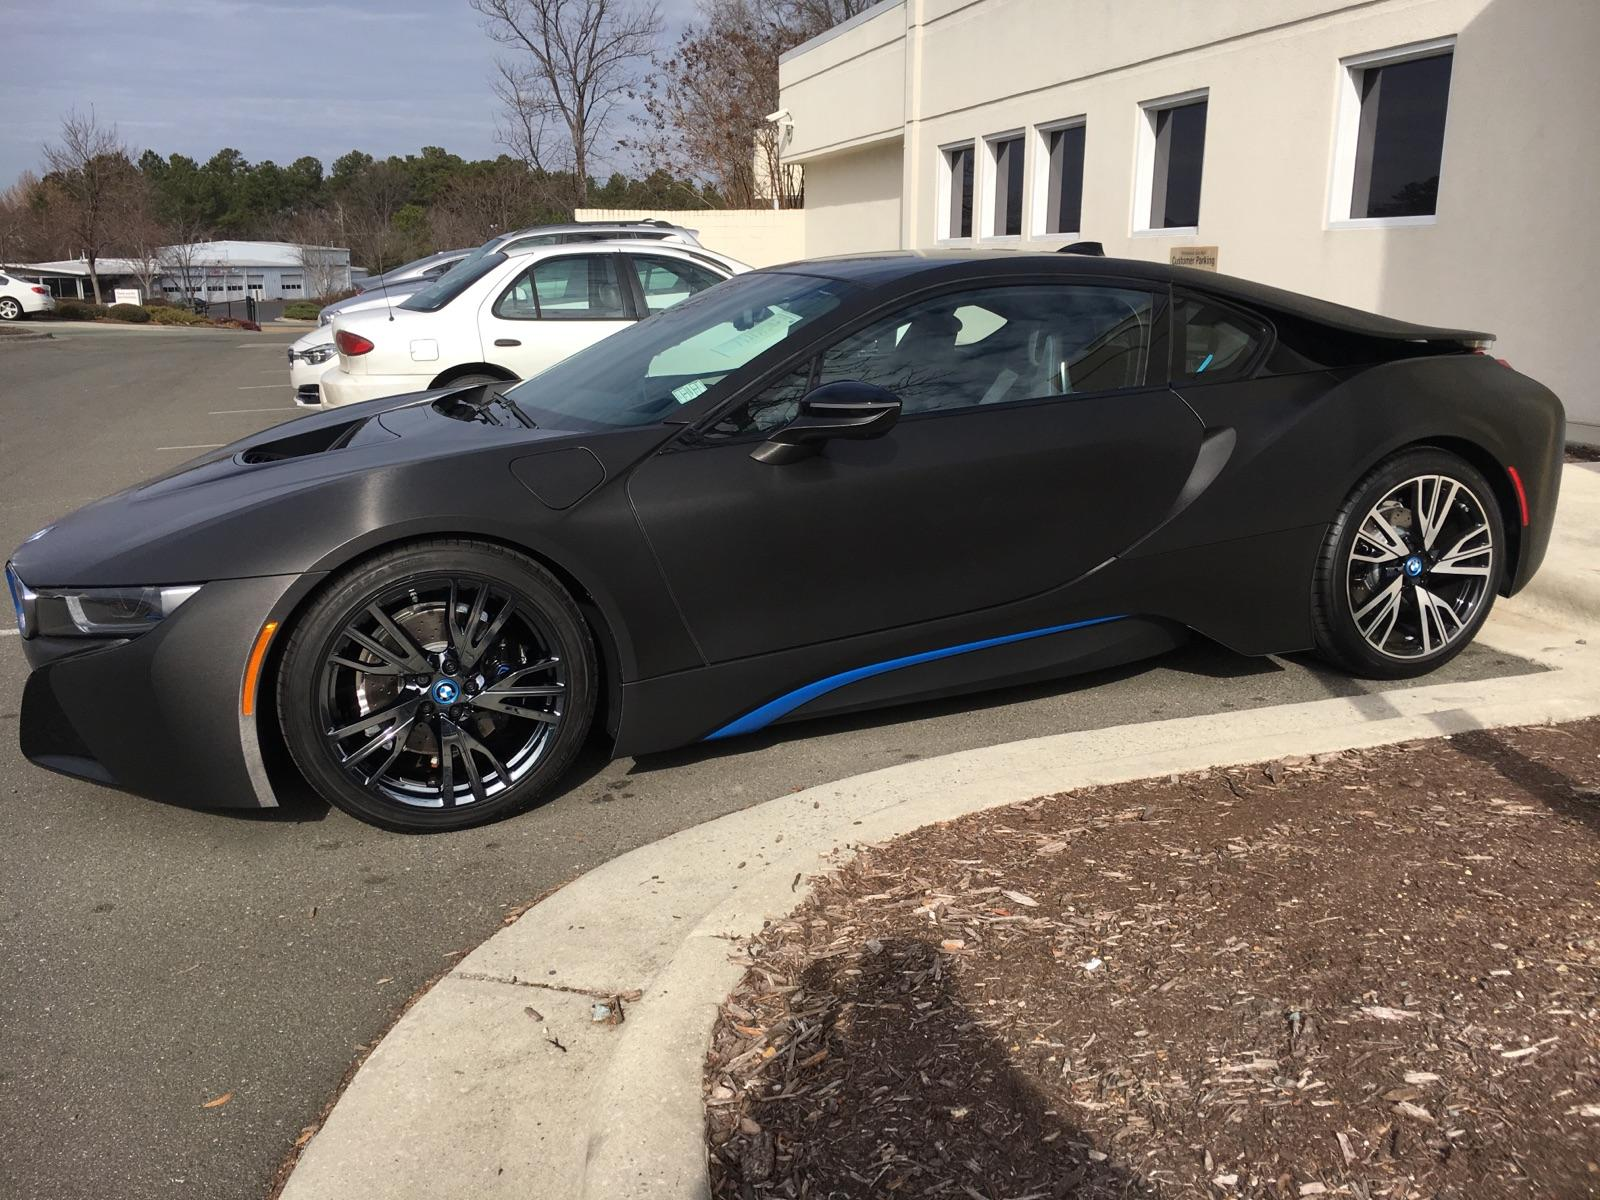 bmw-i8-showing-off-difference-between-oem-and-black-ice-pvd_31725216360_o.jpg